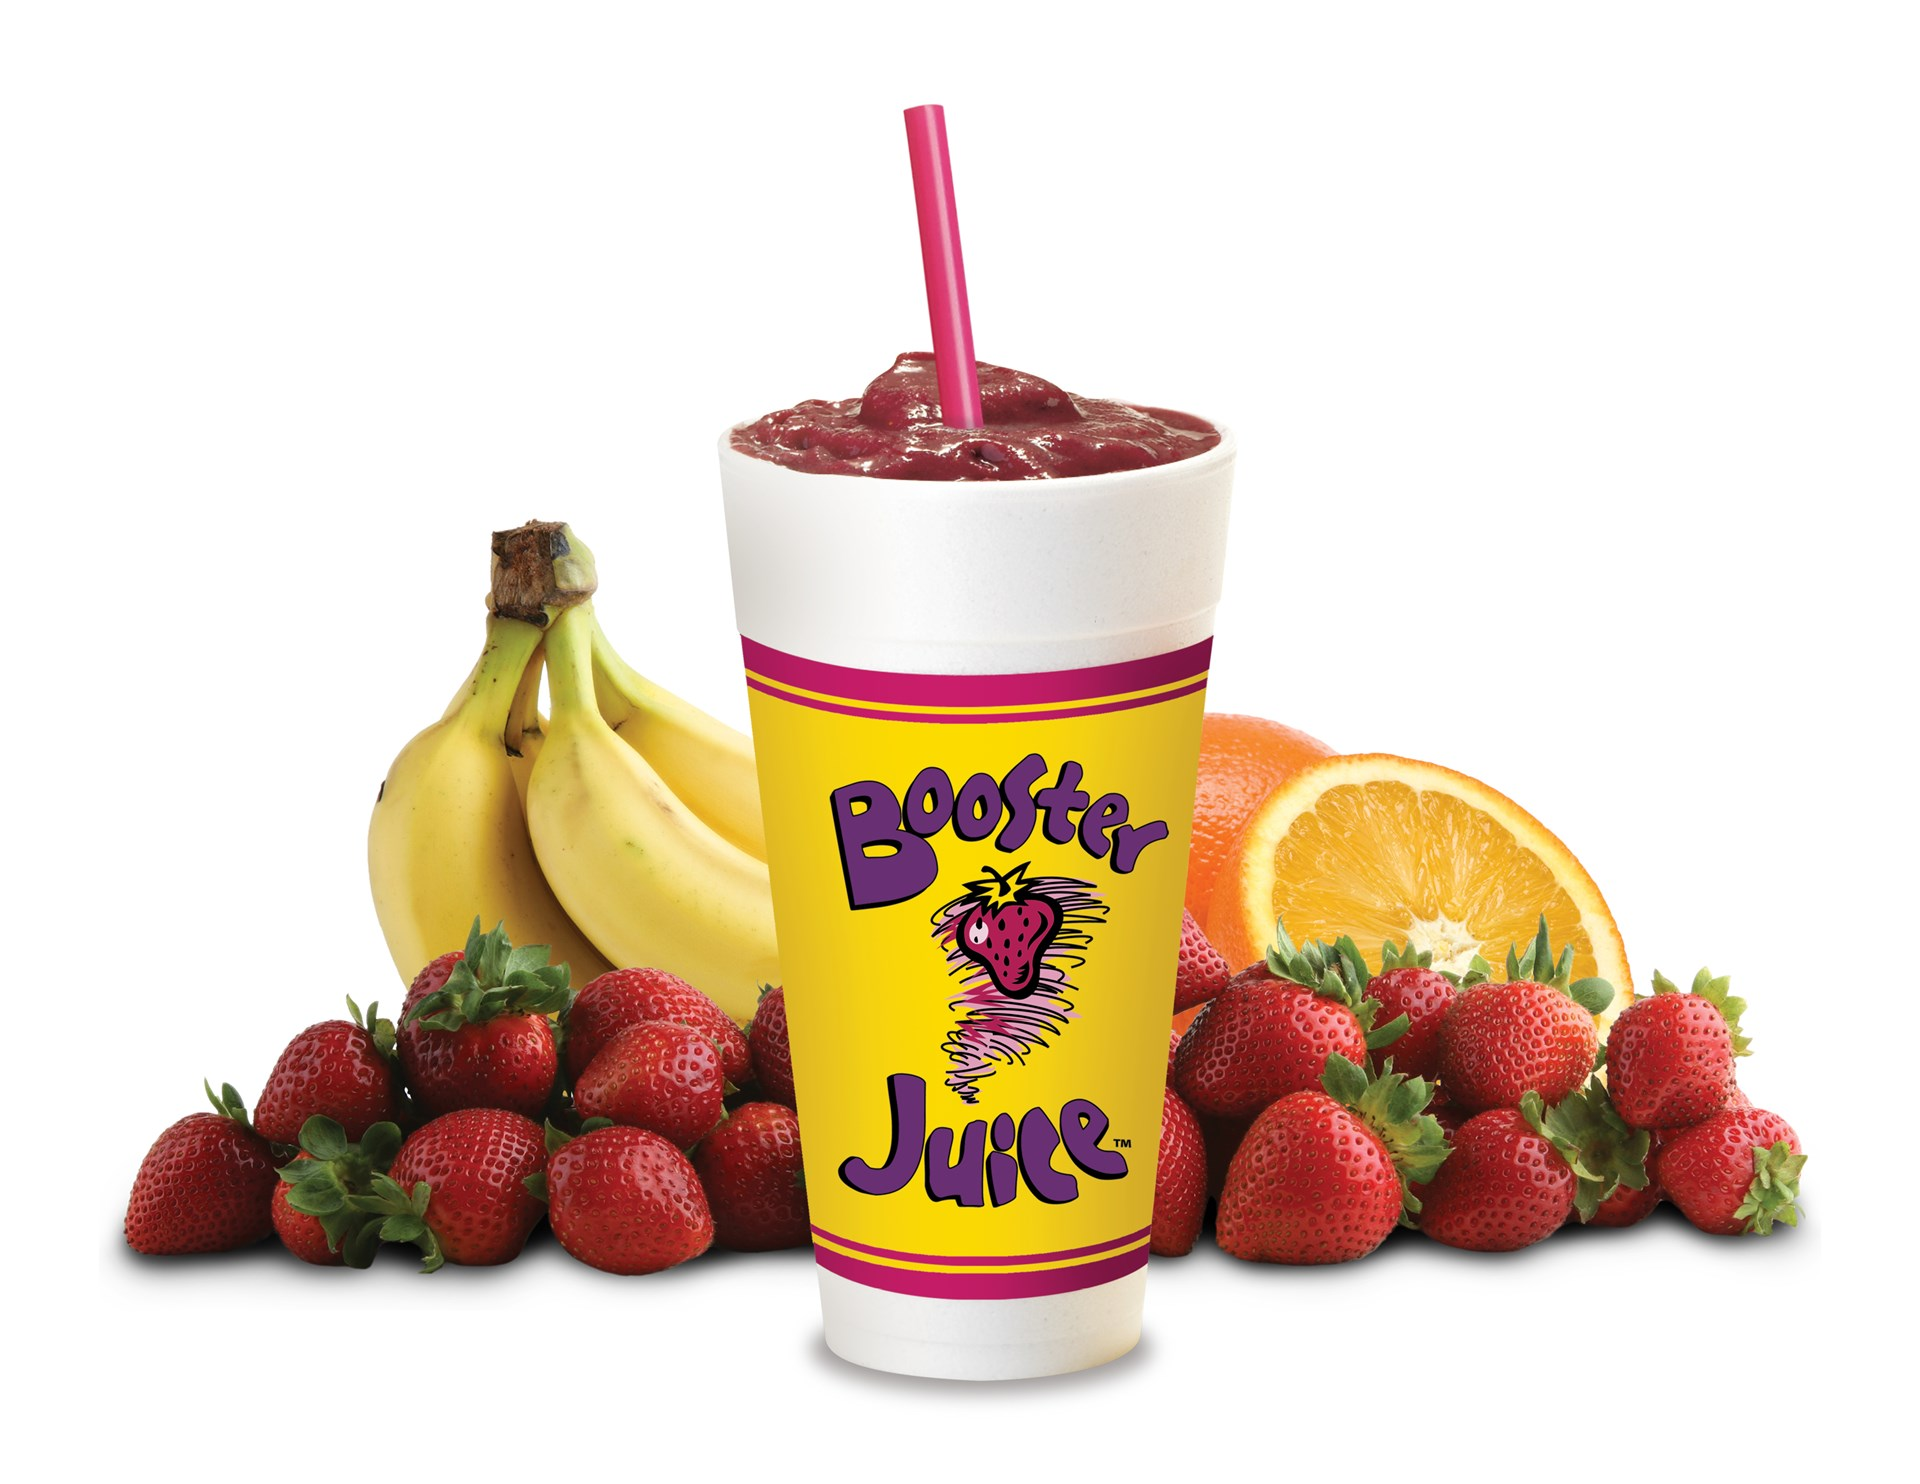 Booster Juice!